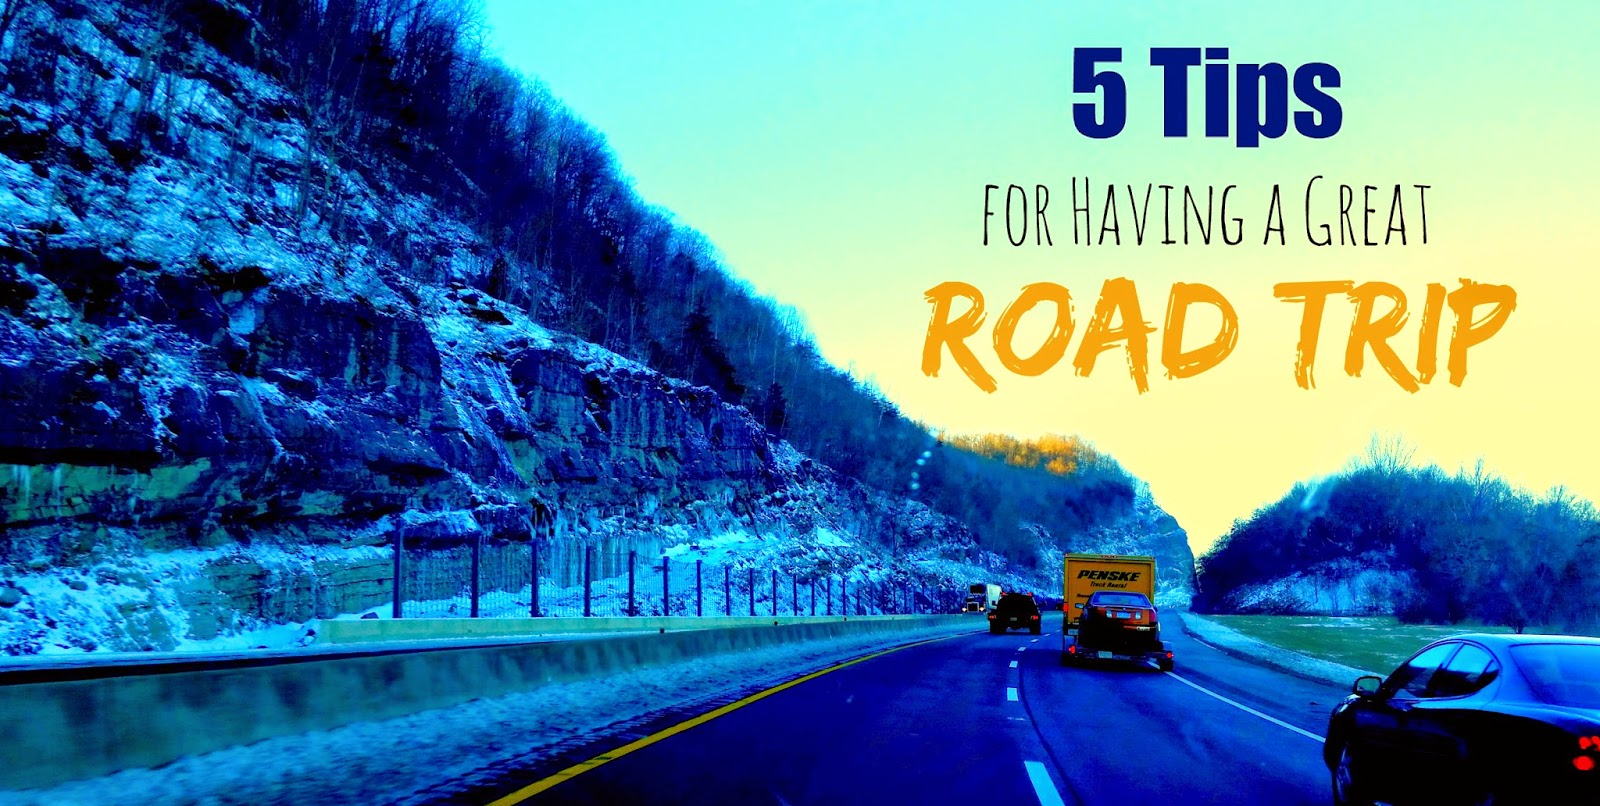 5 Tips for Having a Great Road Trip #ad #WhenImHungry #CollectiveBias